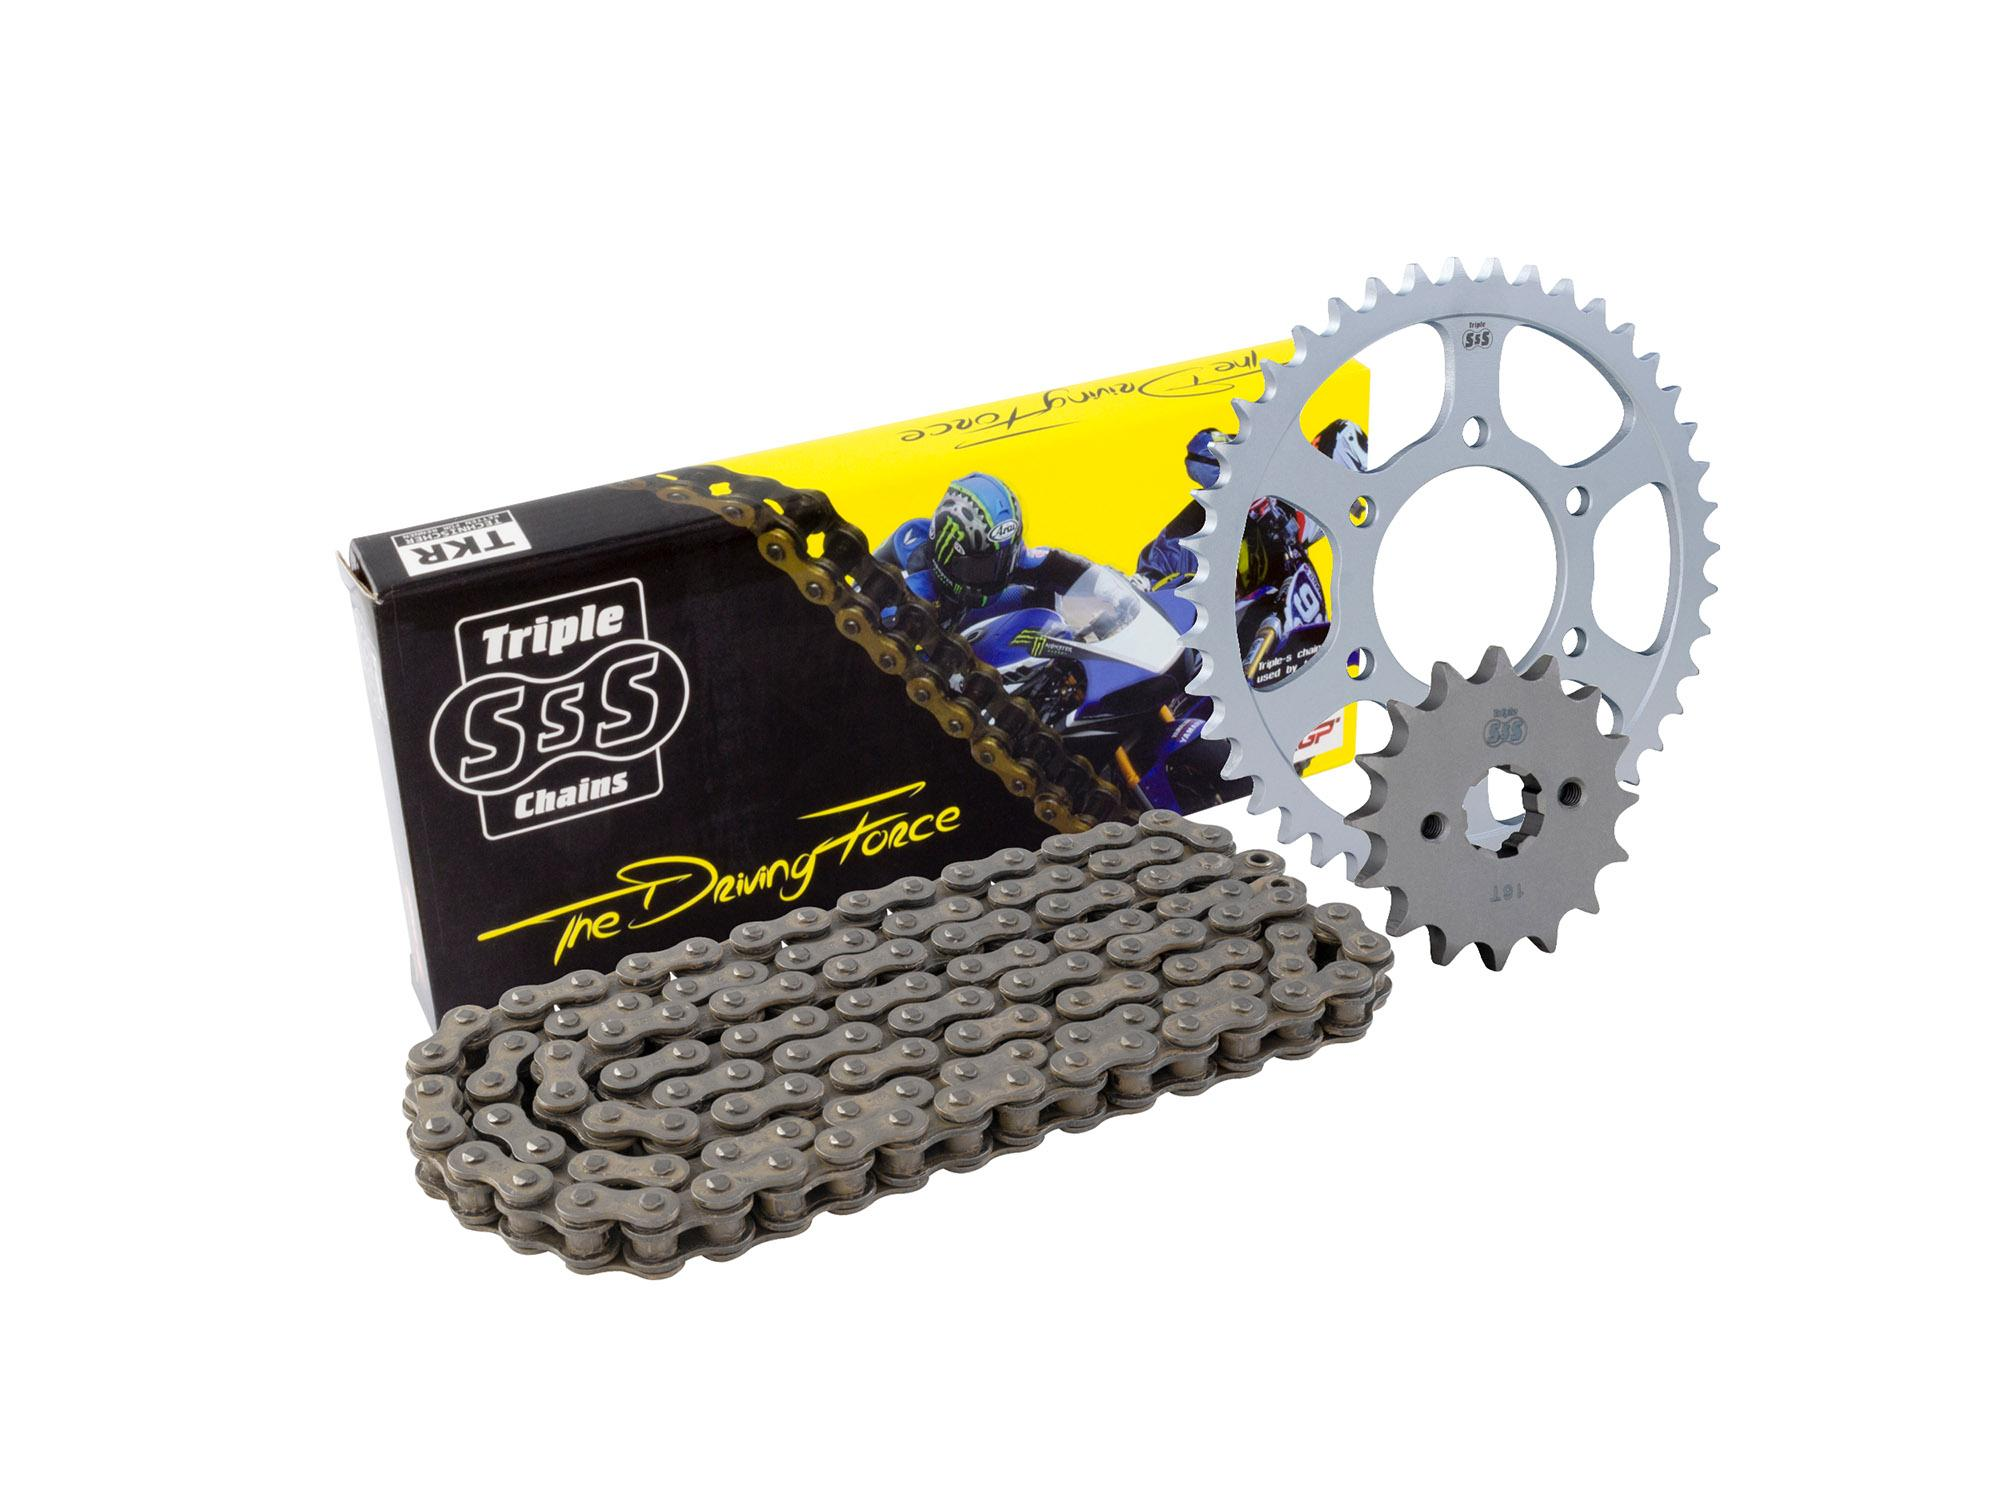 Ducati 696 Monster 12 Chain & Sprocket Kit: 15T Front, 45T Rear, HD O-Ring Black Chain 520H 108Link